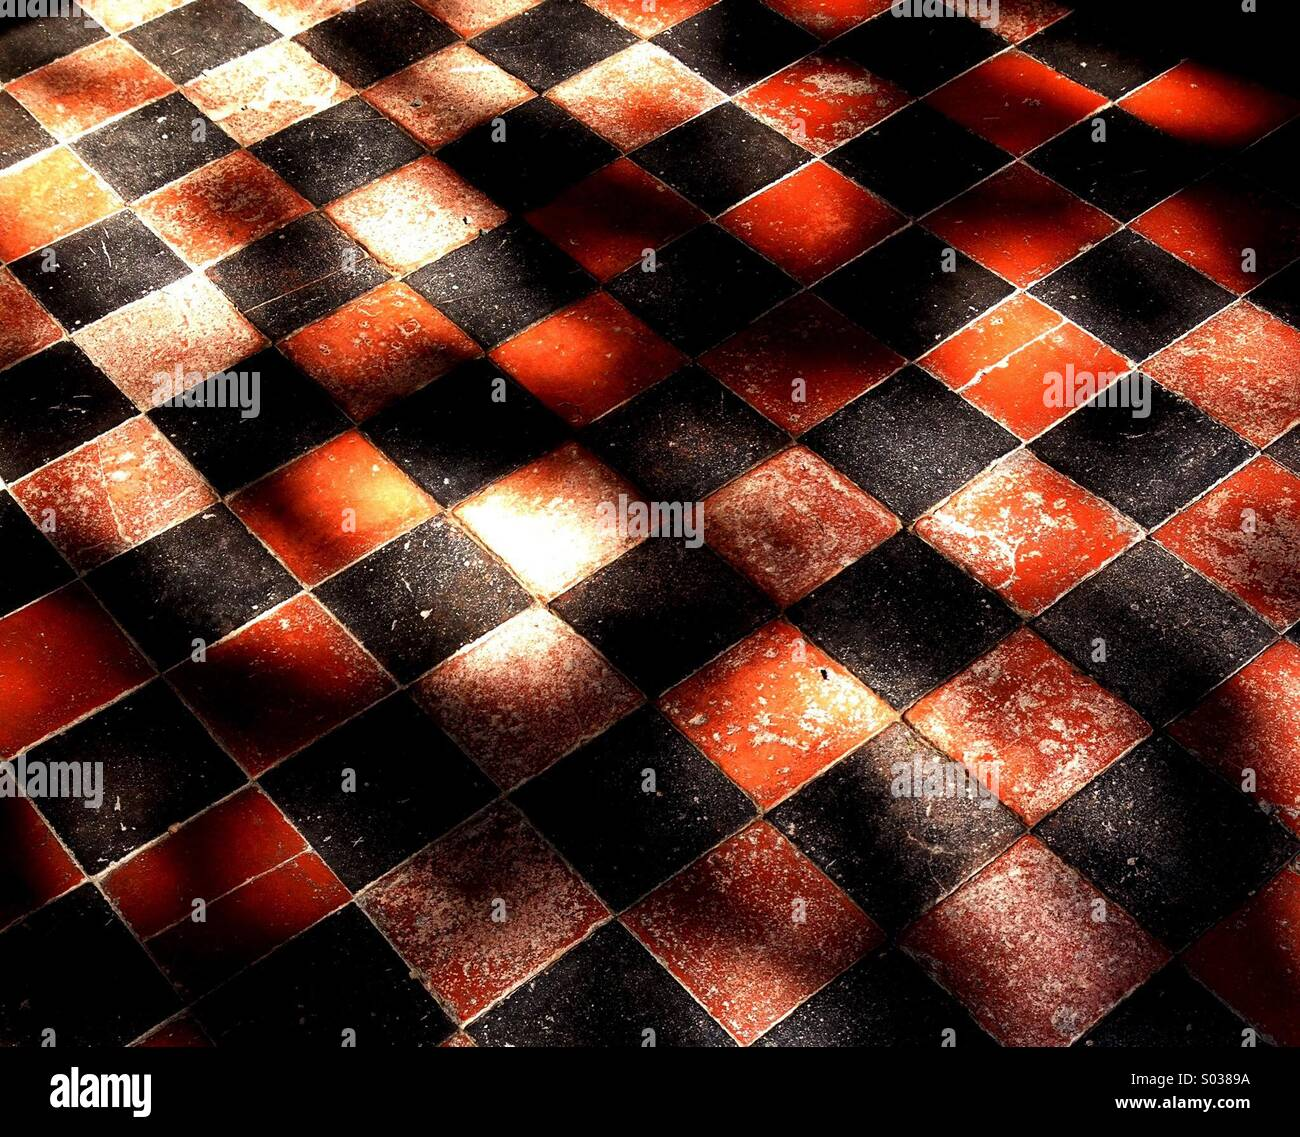 Tiled Floor - Stock Image